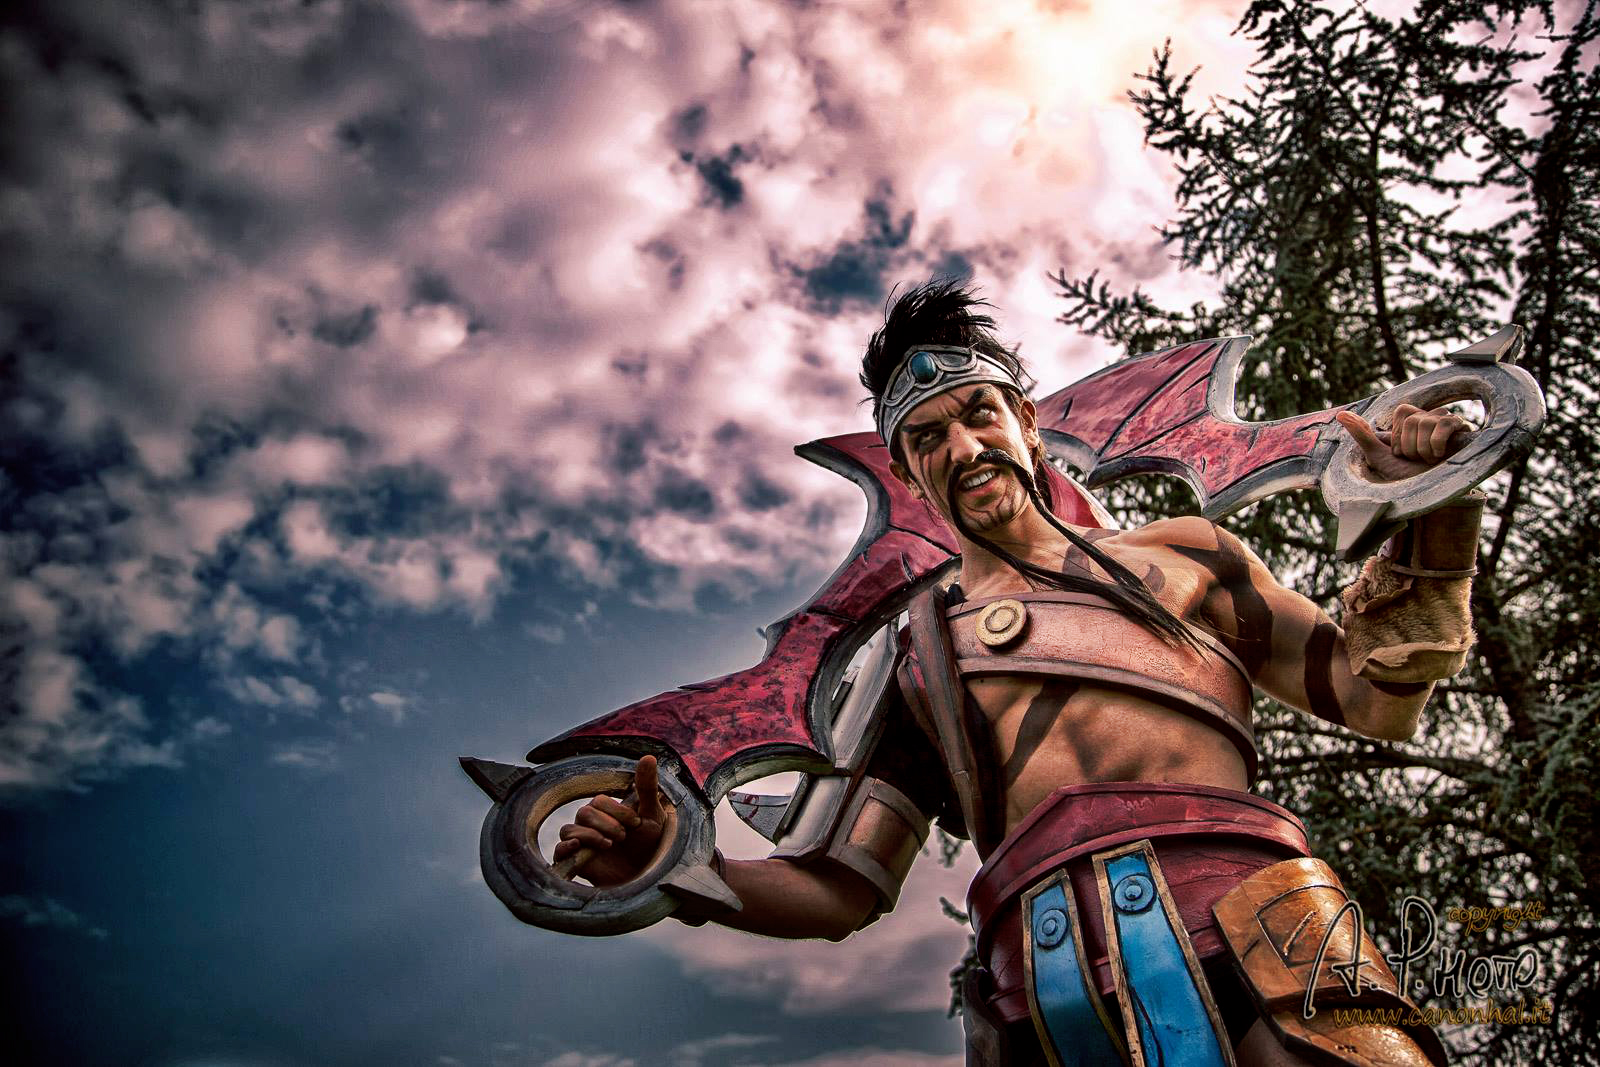 Leon Chiro Draven (League of Legends)